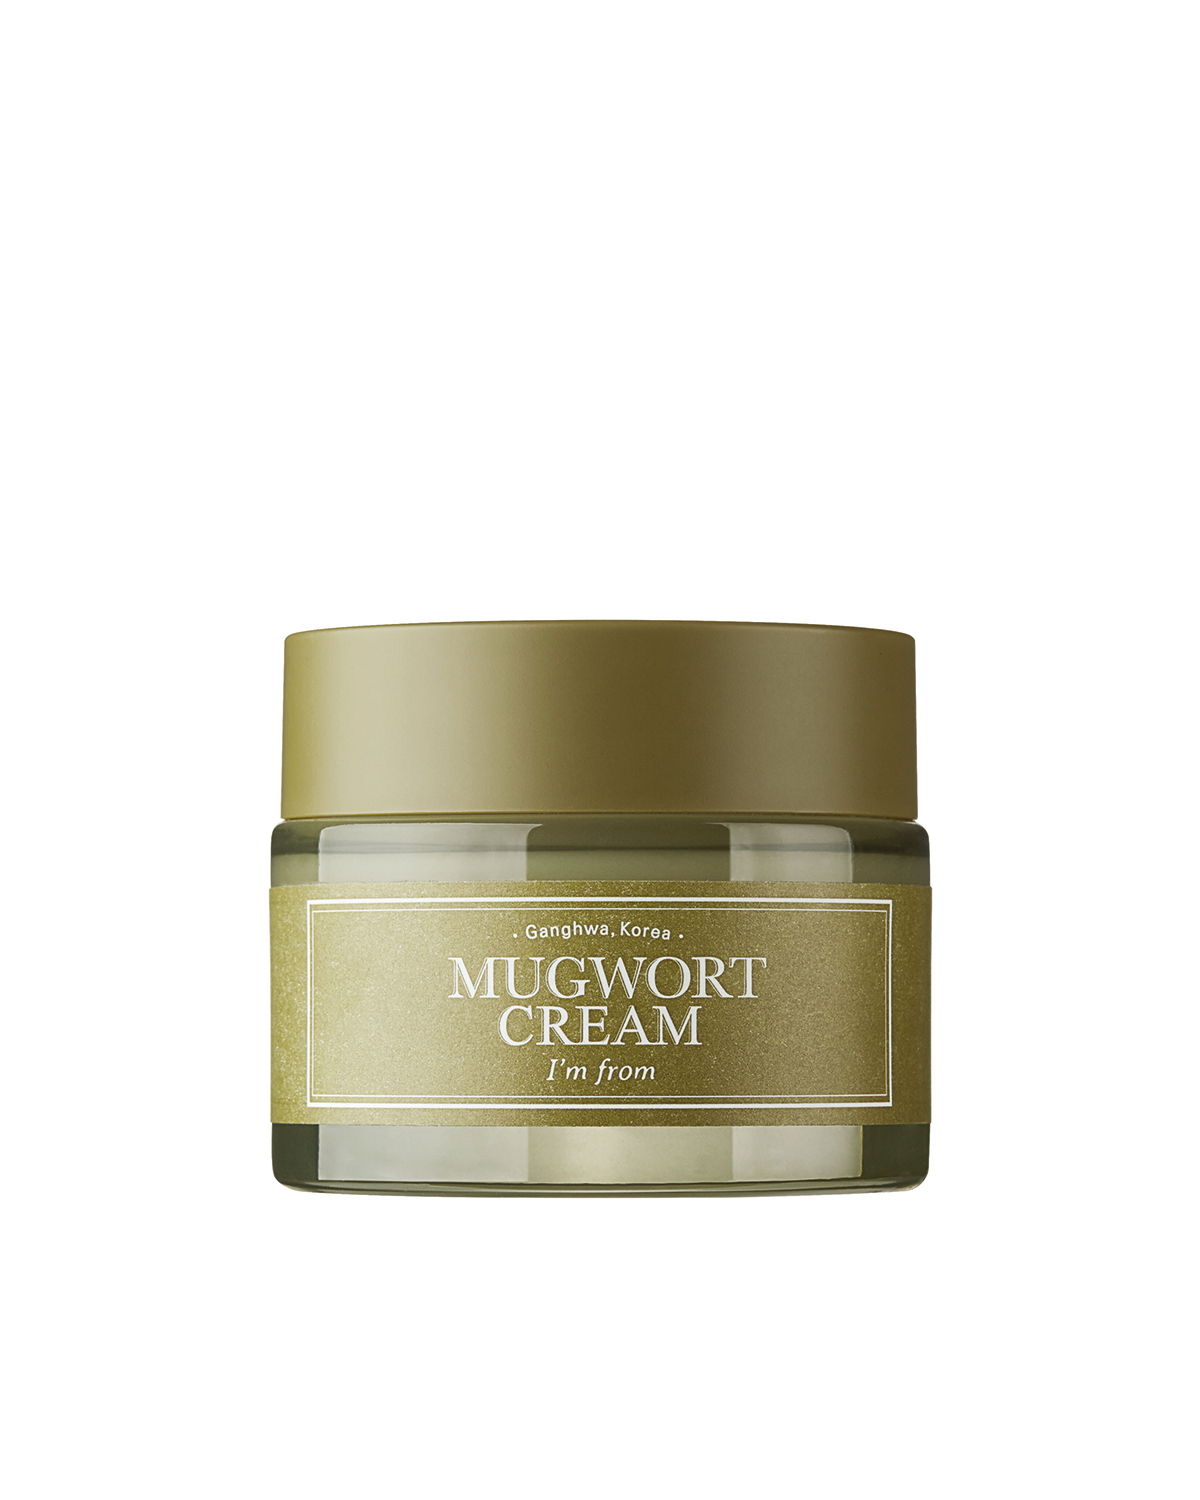 I'M FROM Mugwort Cream 50 g